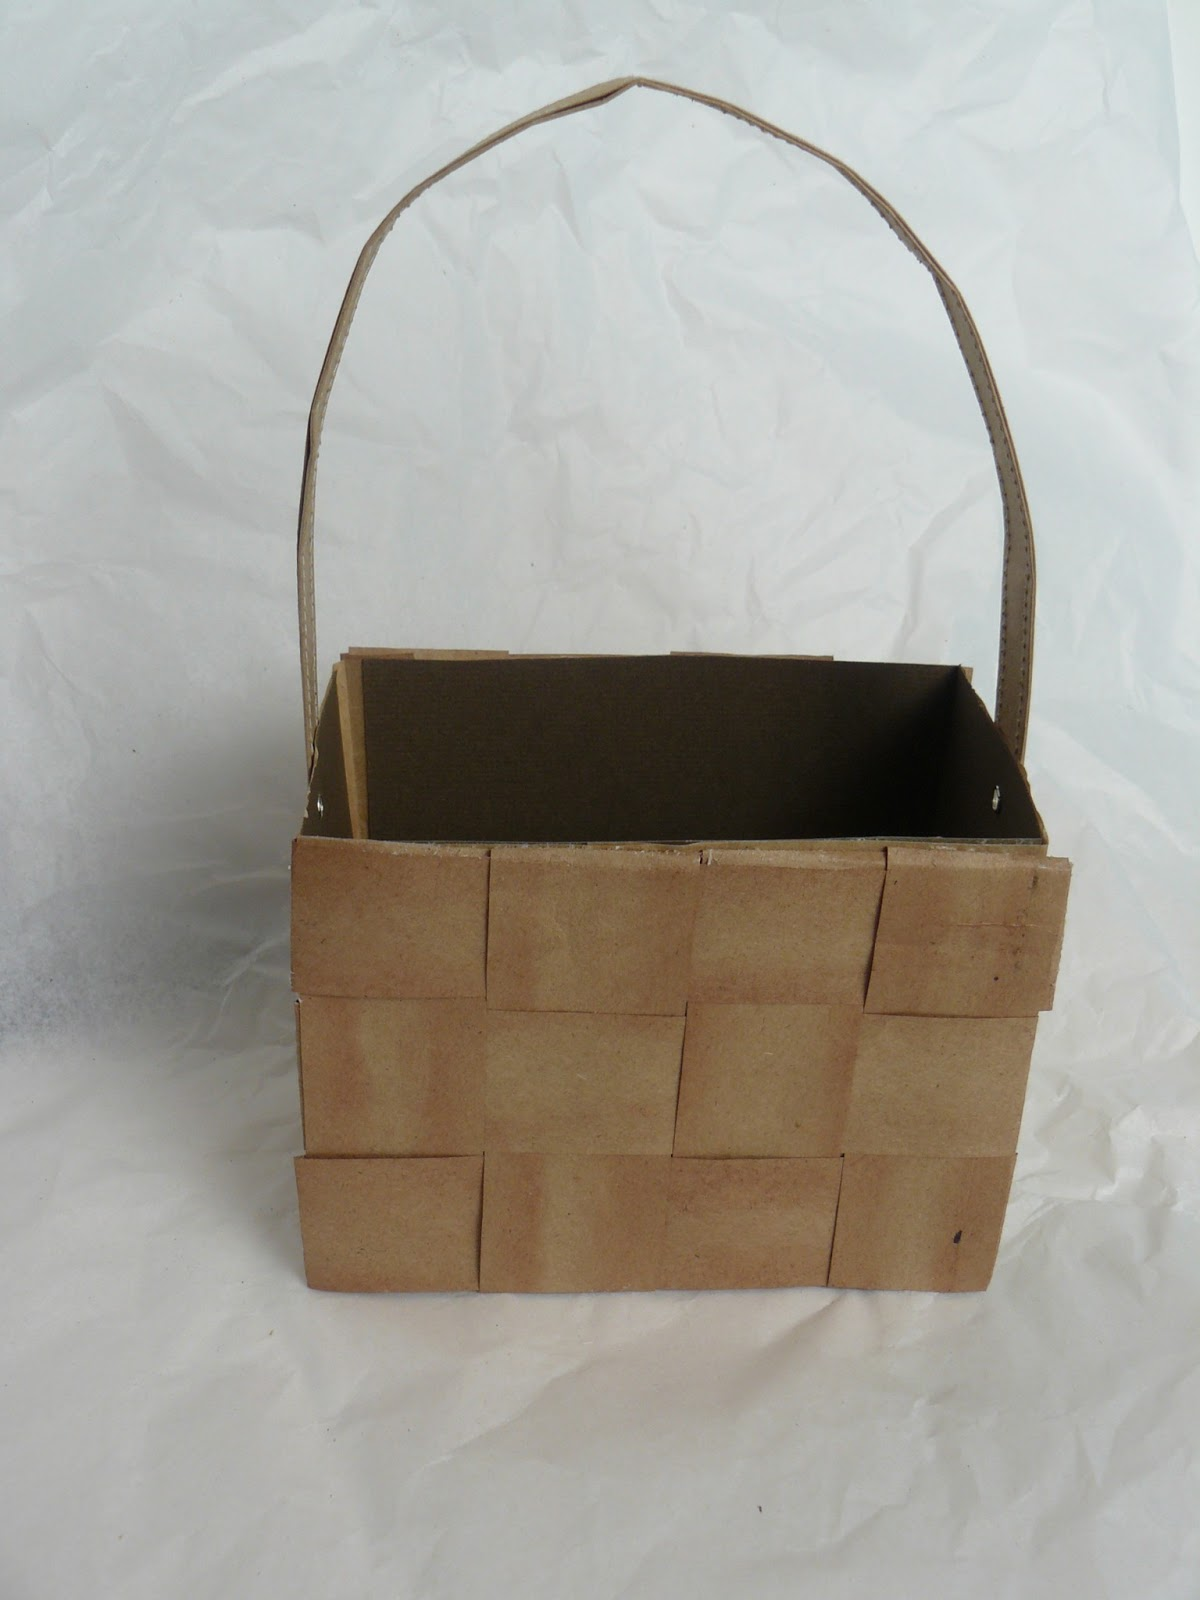 On bag #2, stop folding at 2 inch from the bottom. Now place the tallest bag inside of the medium bag. Put handle around these 2 bags, tape handle to the sides of the two bags, glue or tape last bag to the bottom. Now you have a quick and easy basket.